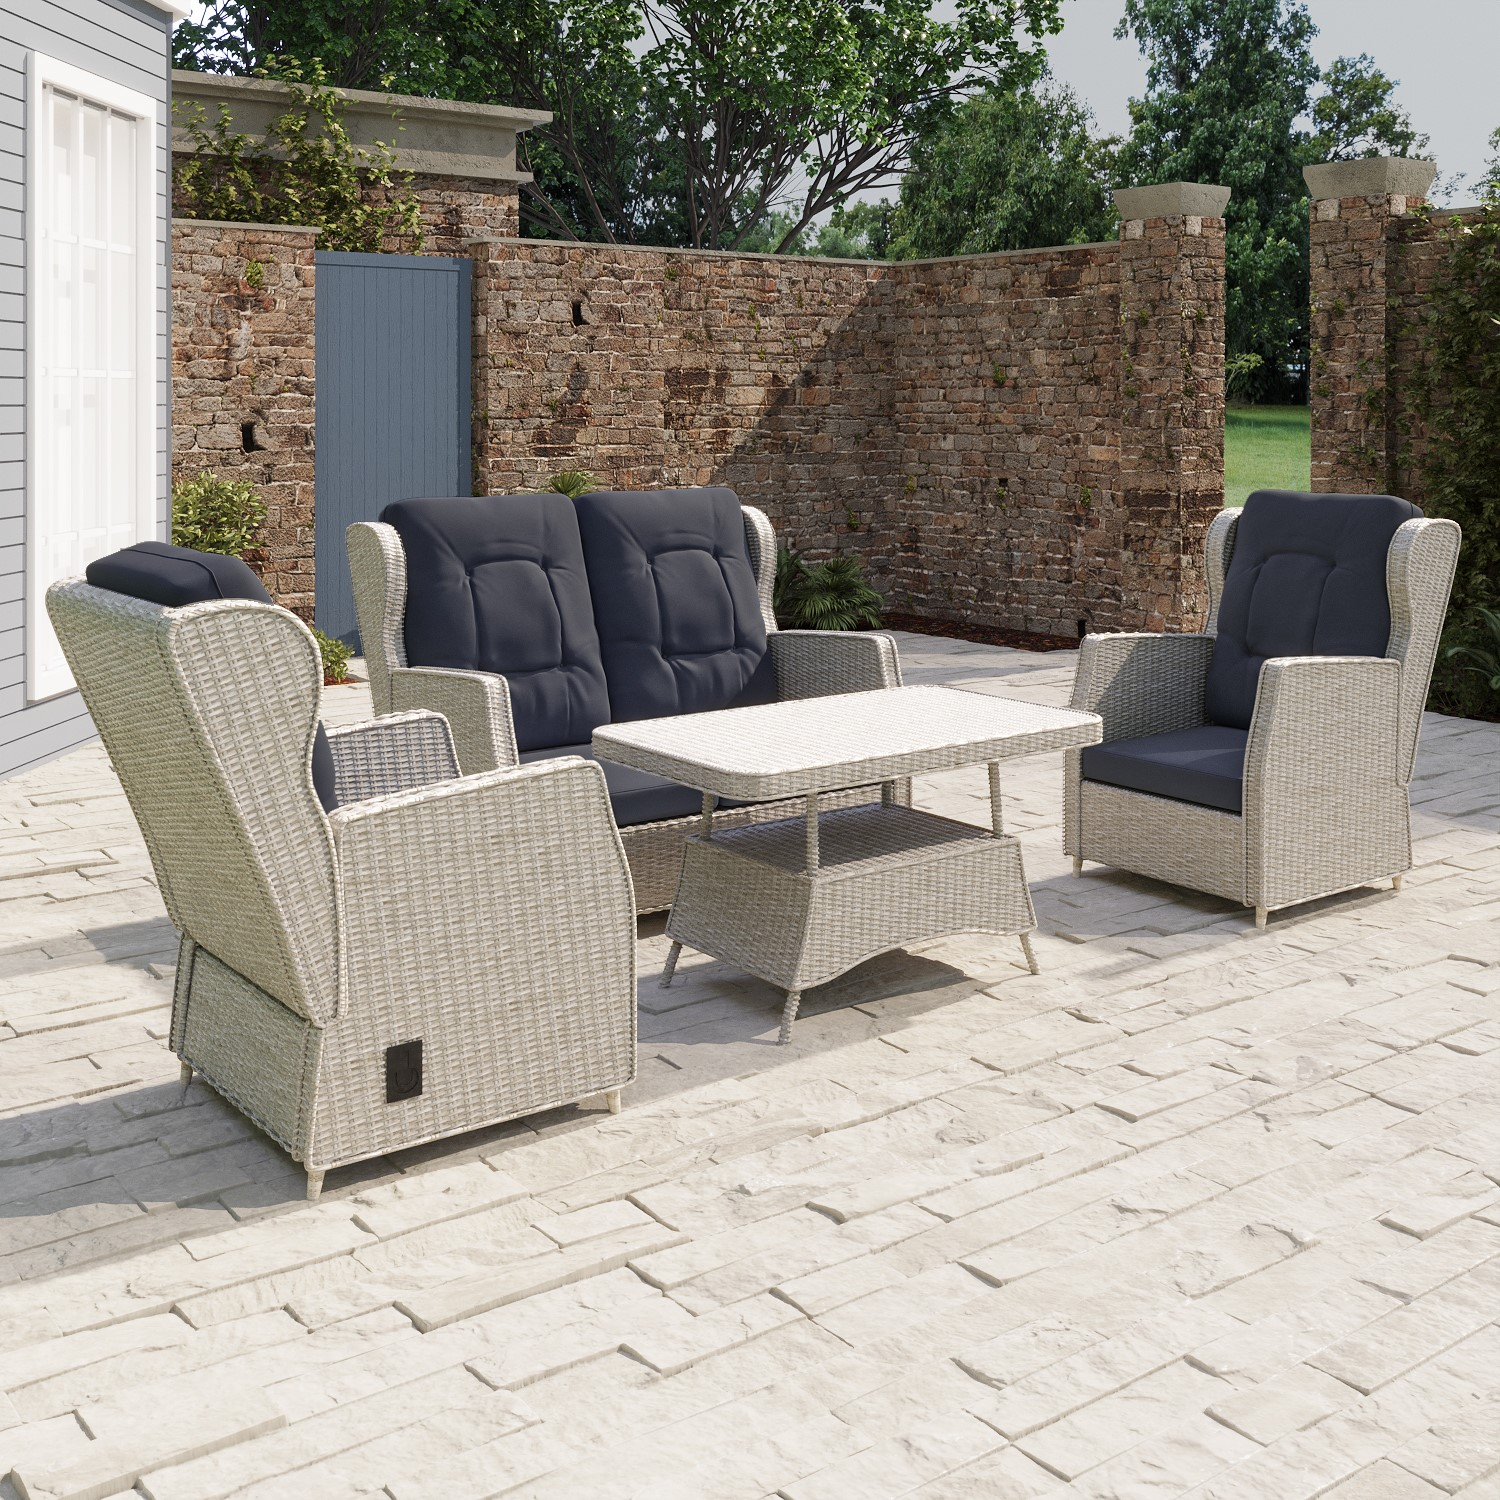 Photo of Grey rattan garden sofa set with chairs and table - aspen